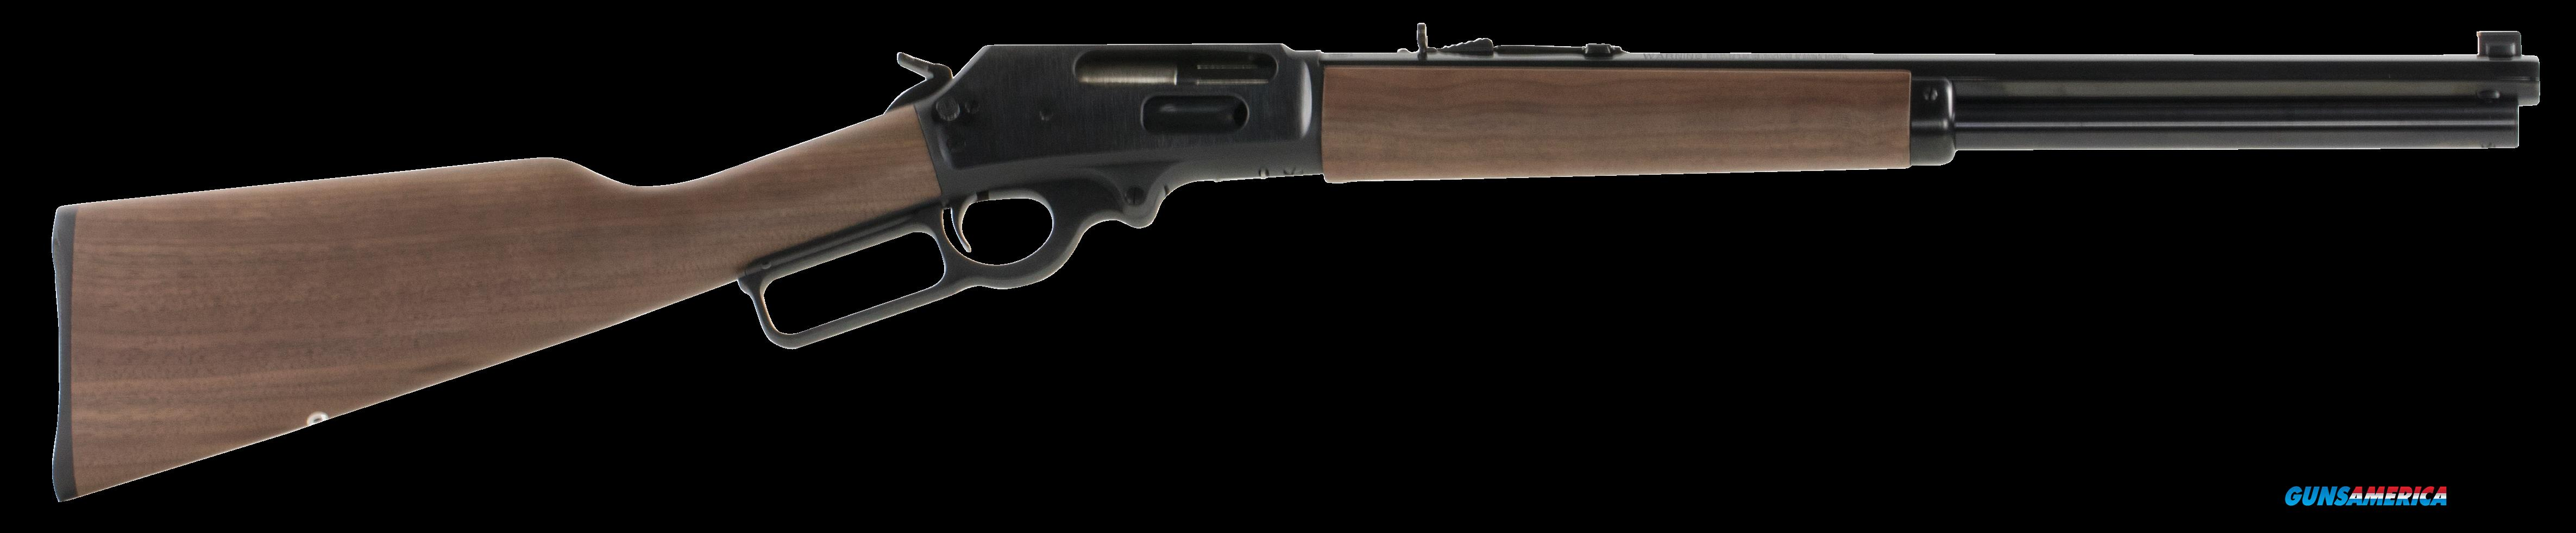 "Marlin 70458 1895 CBA Lever 45-70 Government 18.5"" 6+1 Black Walnut Stk Blued  Guns > Rifles > Marlin Rifles > Modern > Lever Action"